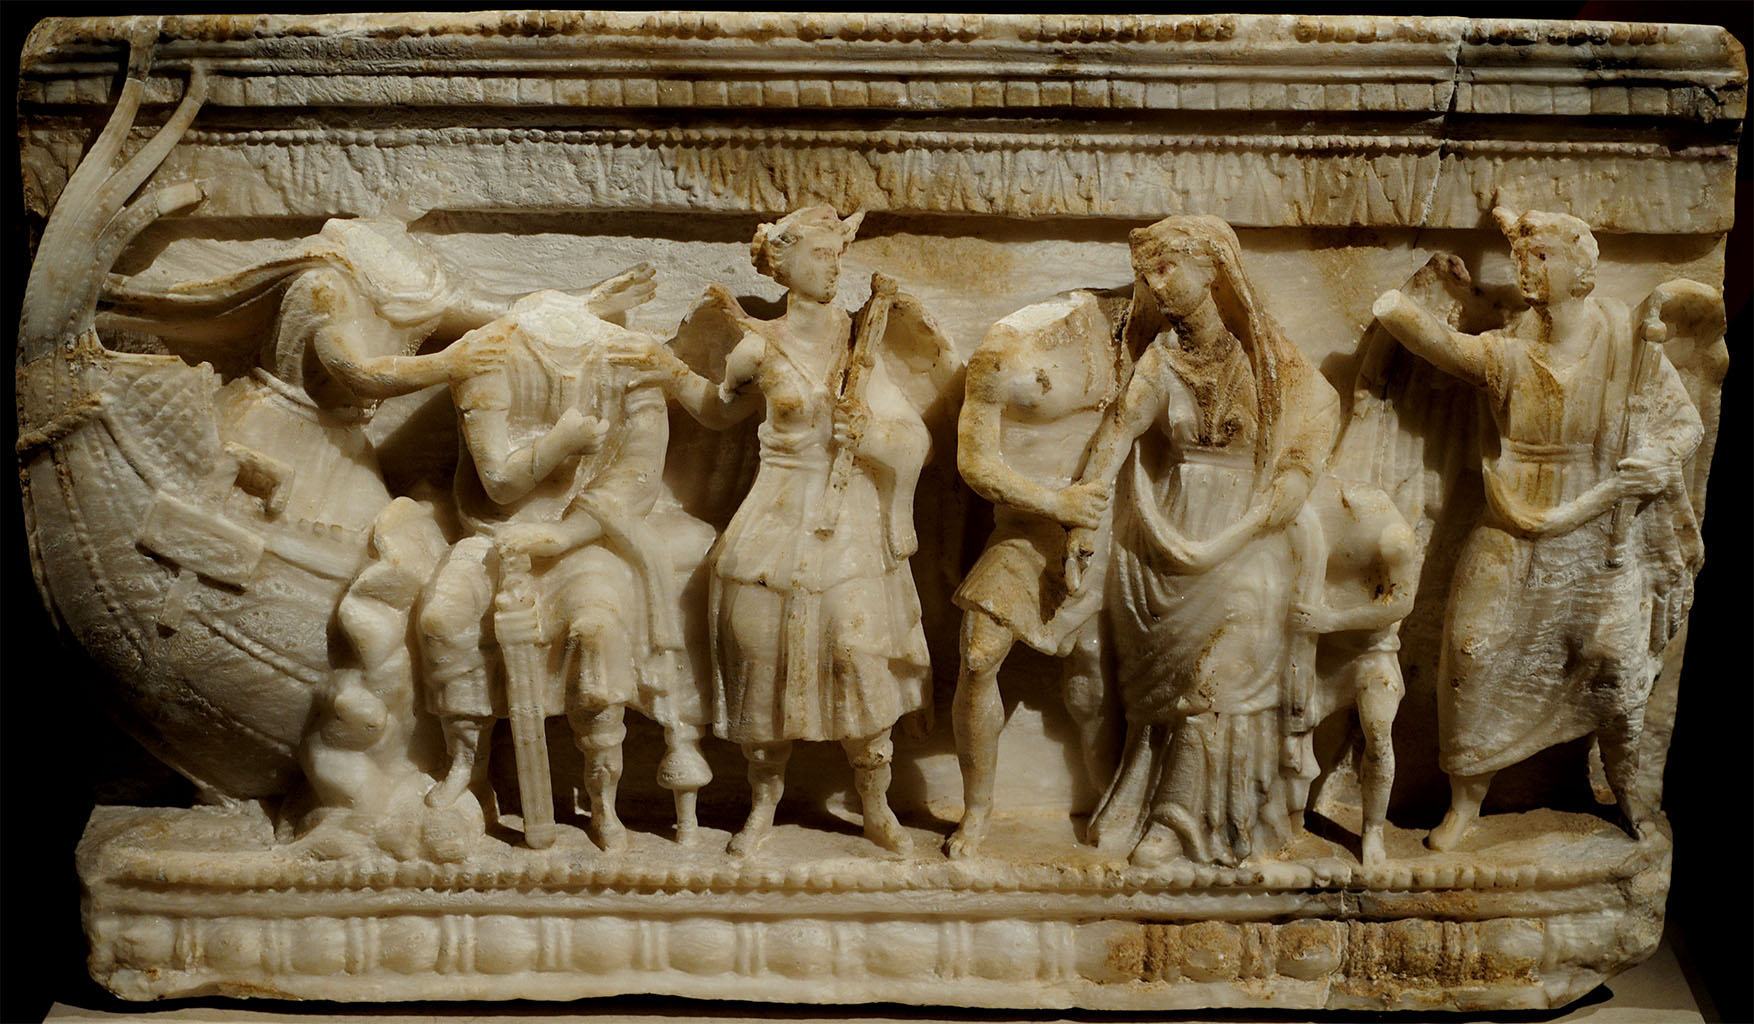 Abduction of Helen, wife of Menelaus, king of Sparta, by the Trojan prince Paris. Front relief of an Etruscan cinerary urn. Alabaster. Second half of the 2nd century BCE. Inv. No. I 1035. Vienna, Museum of Art History